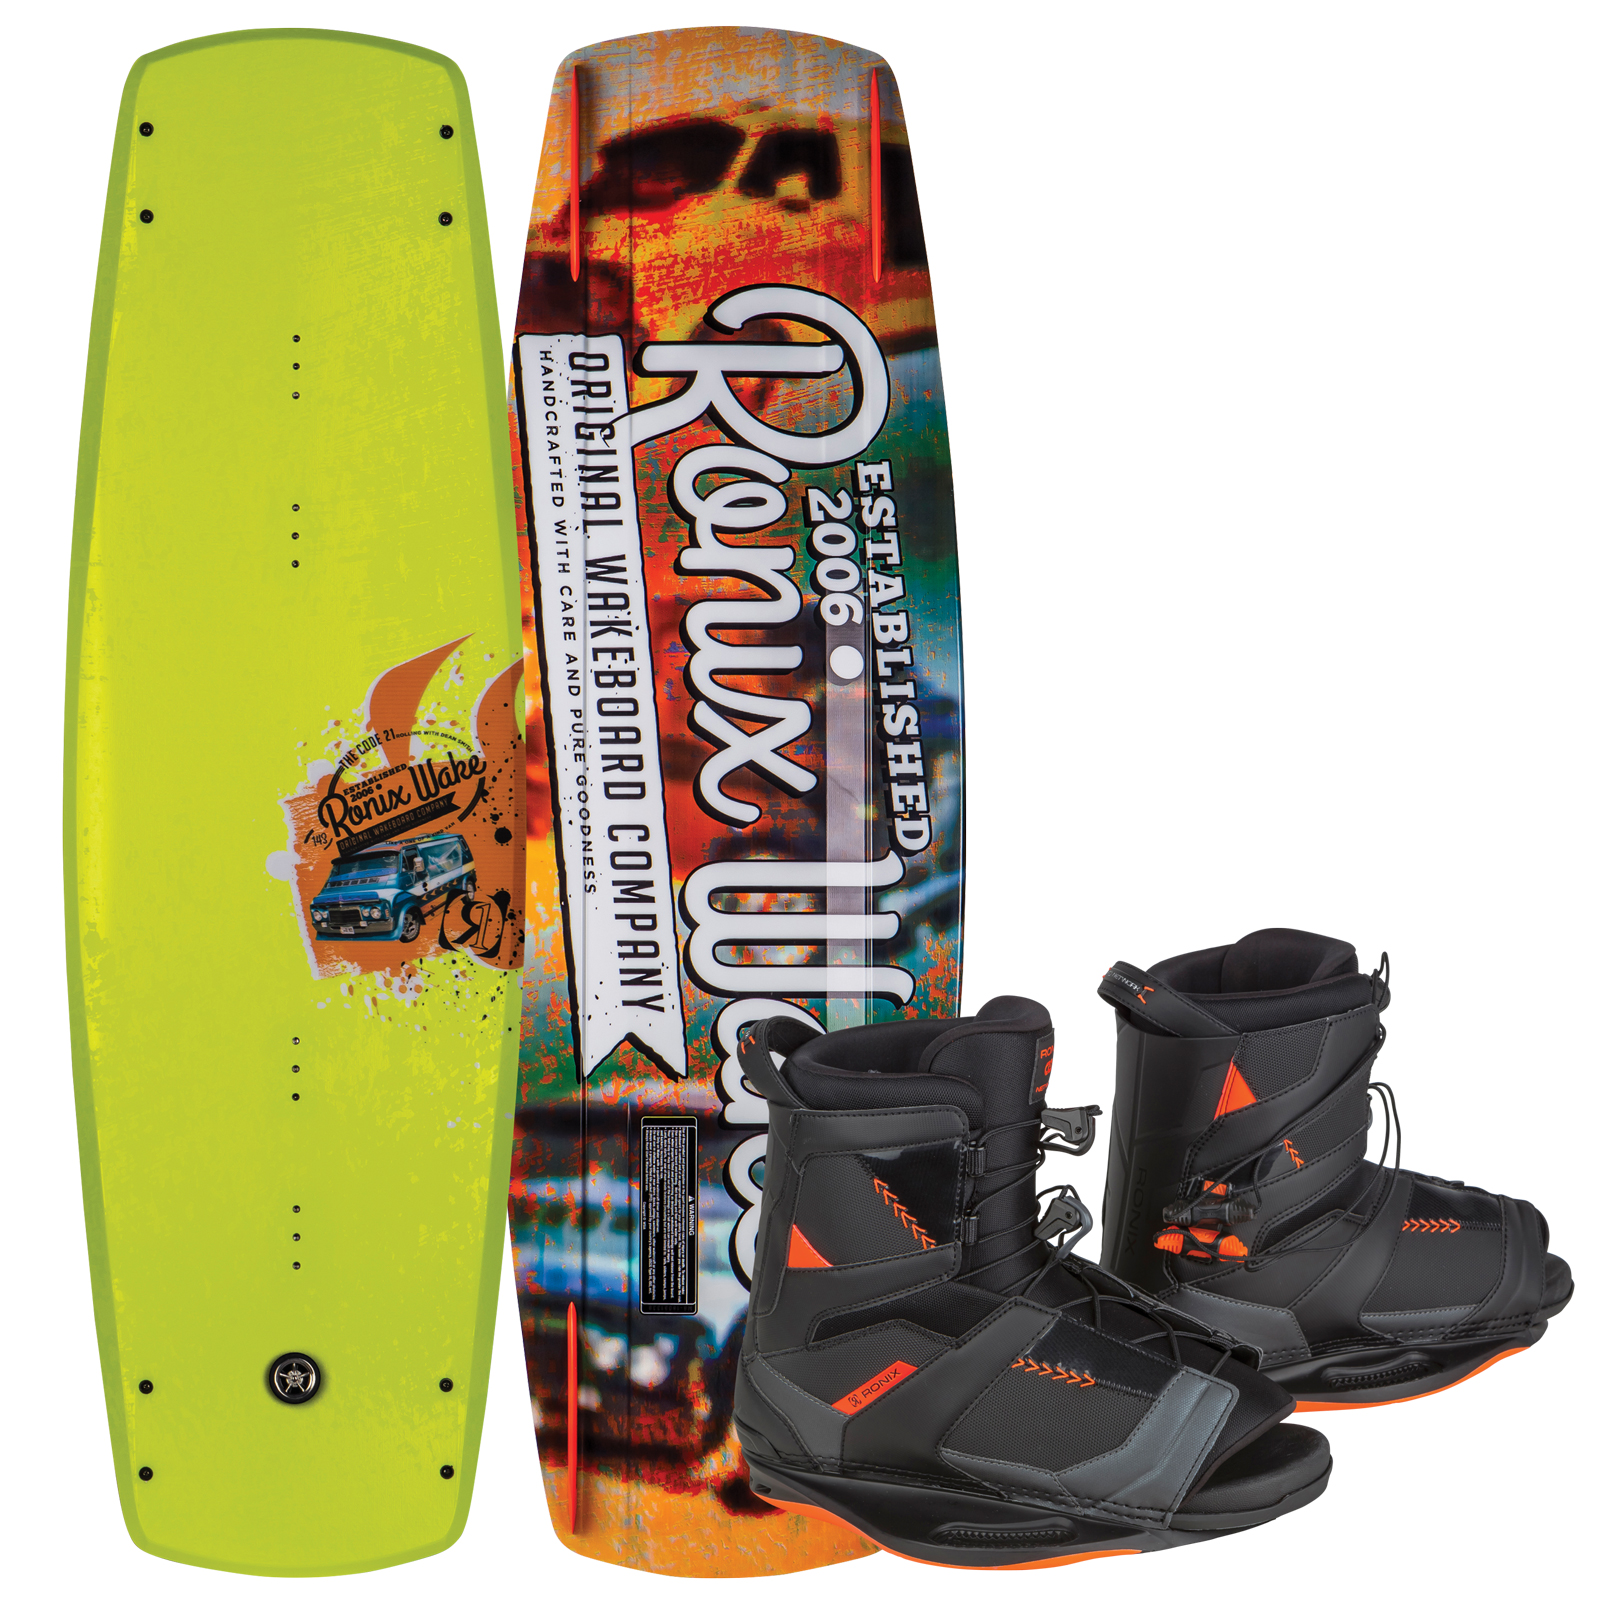 CODE 21 143 W/ NETWORK PACKAGE RONIX 2017